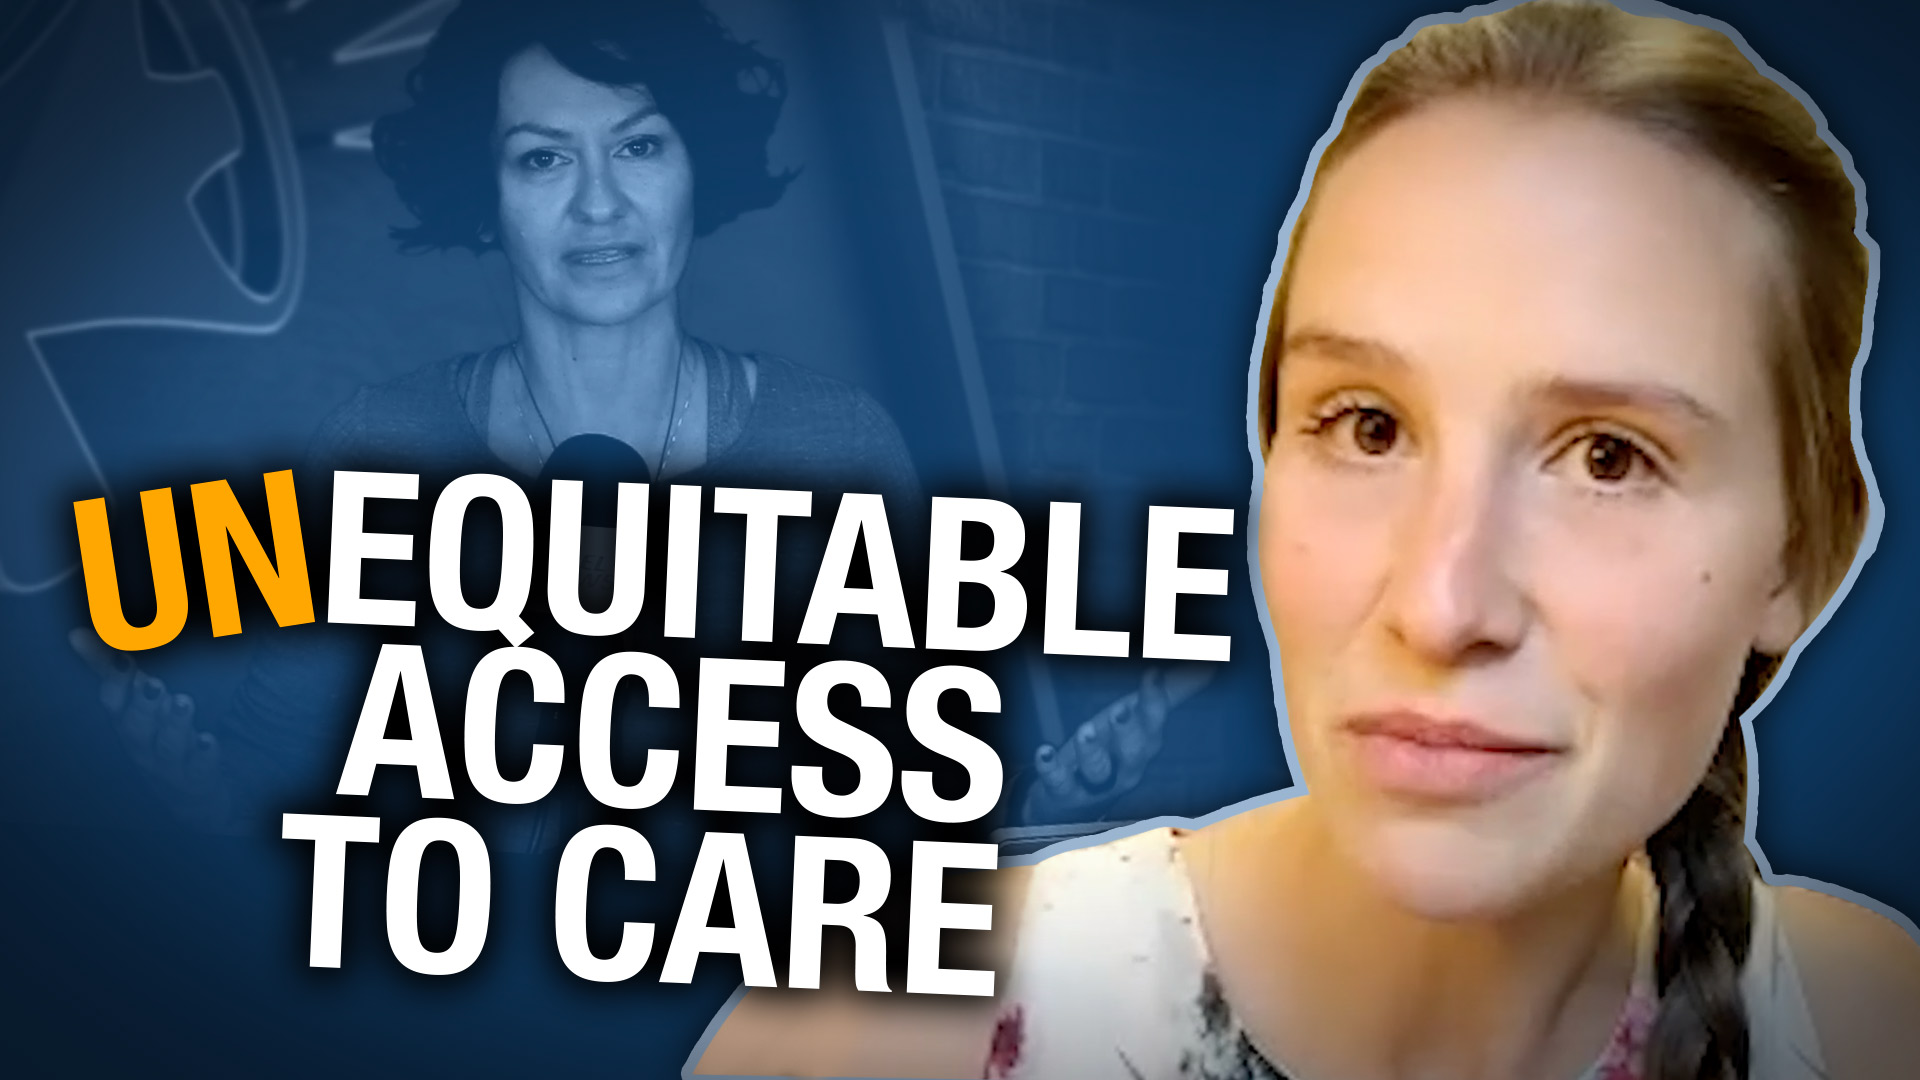 Nurse quits rather than work for unethical Alberta Healthcare system